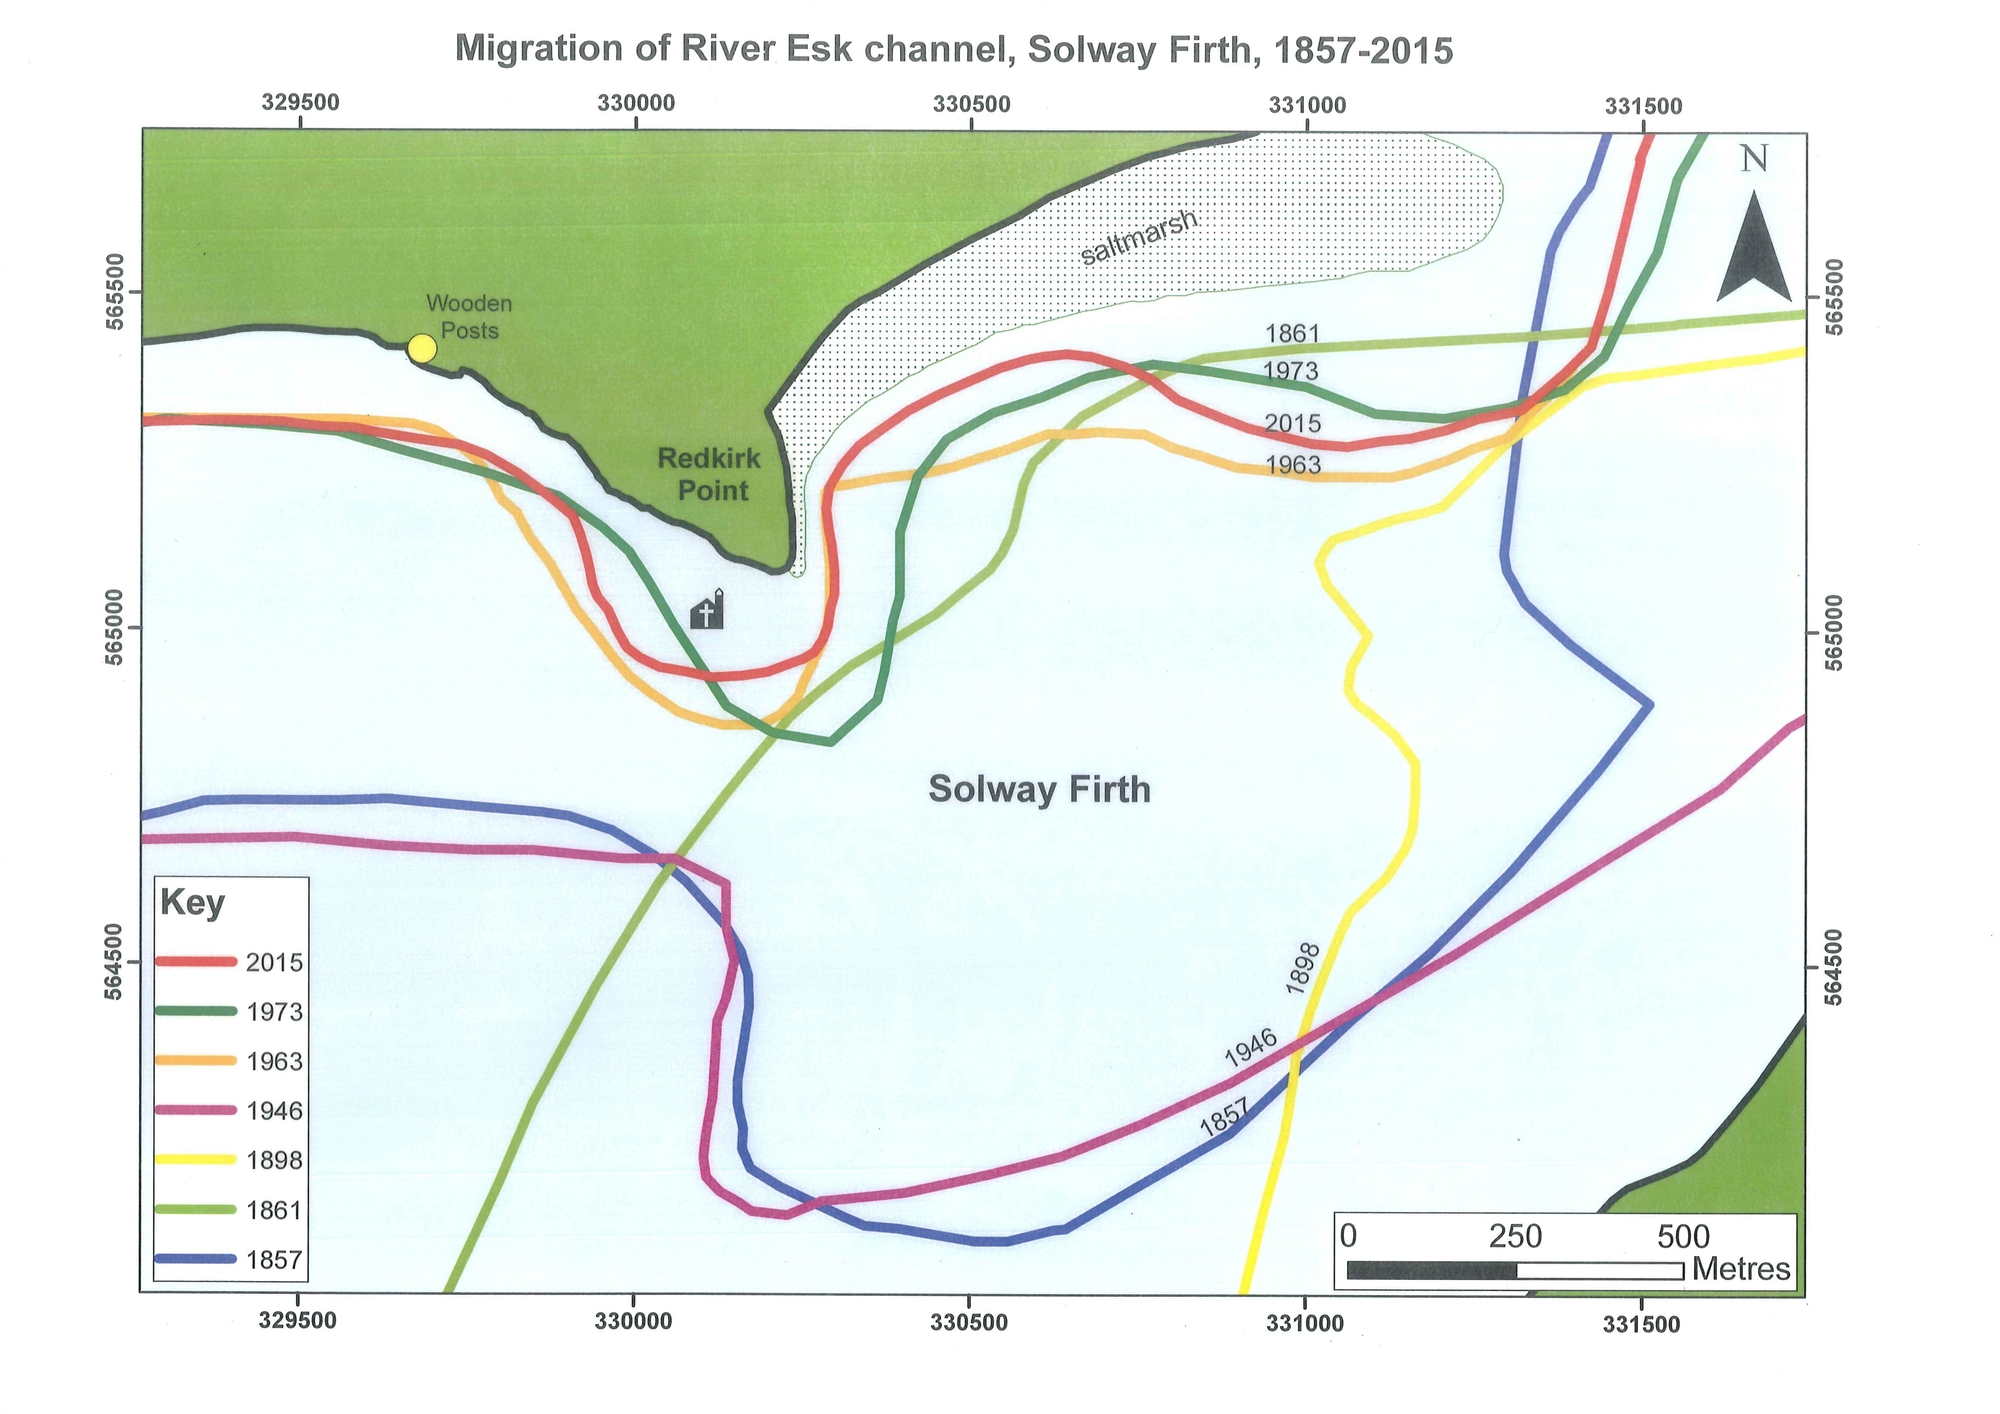 A map of the Solway Firth at Redkirk point showing the different lines the channel has followed from 2015 going back to 1857